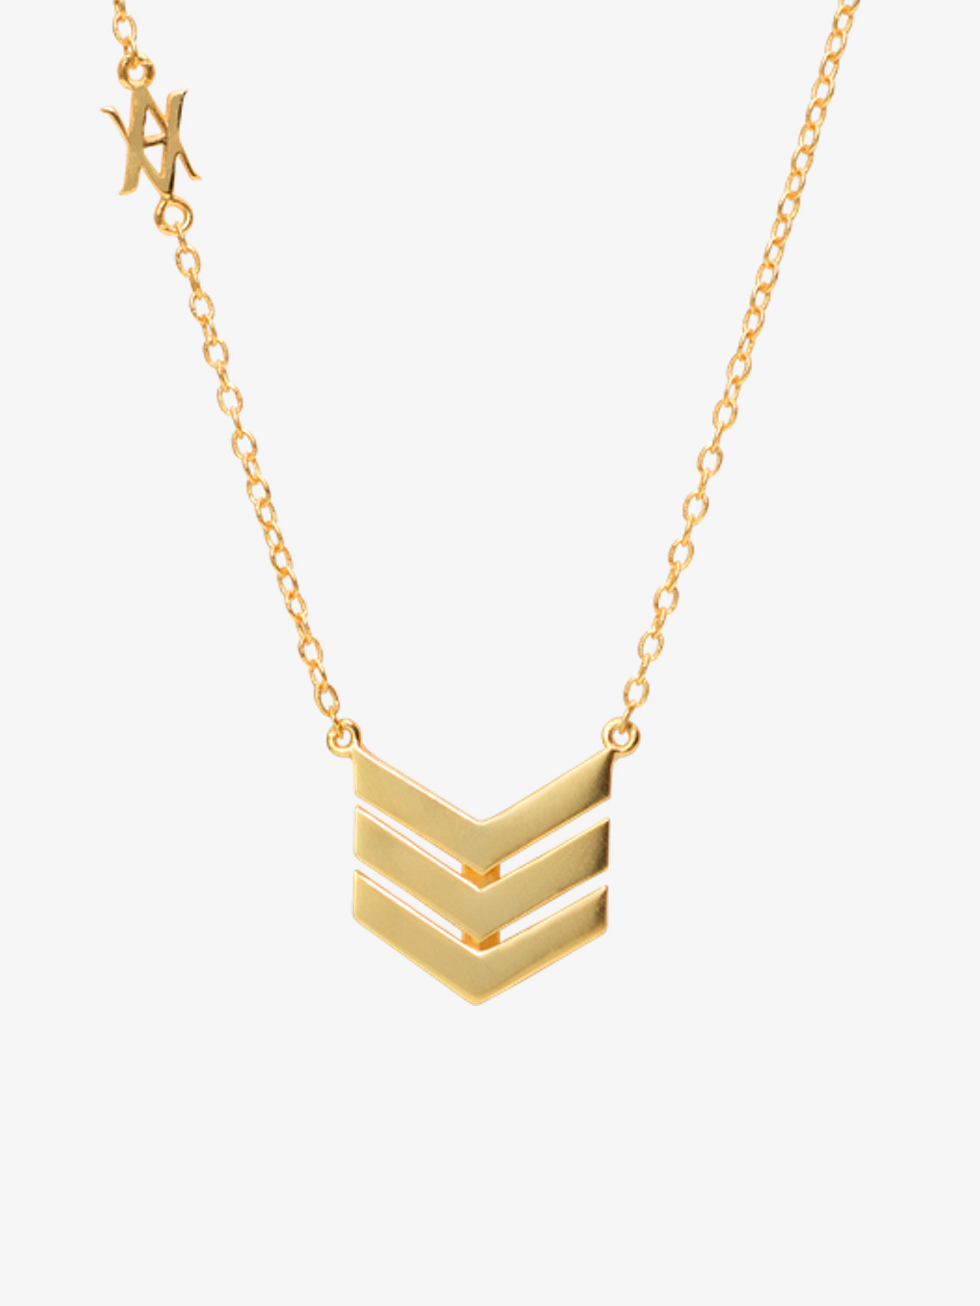 TIRS gold necklace